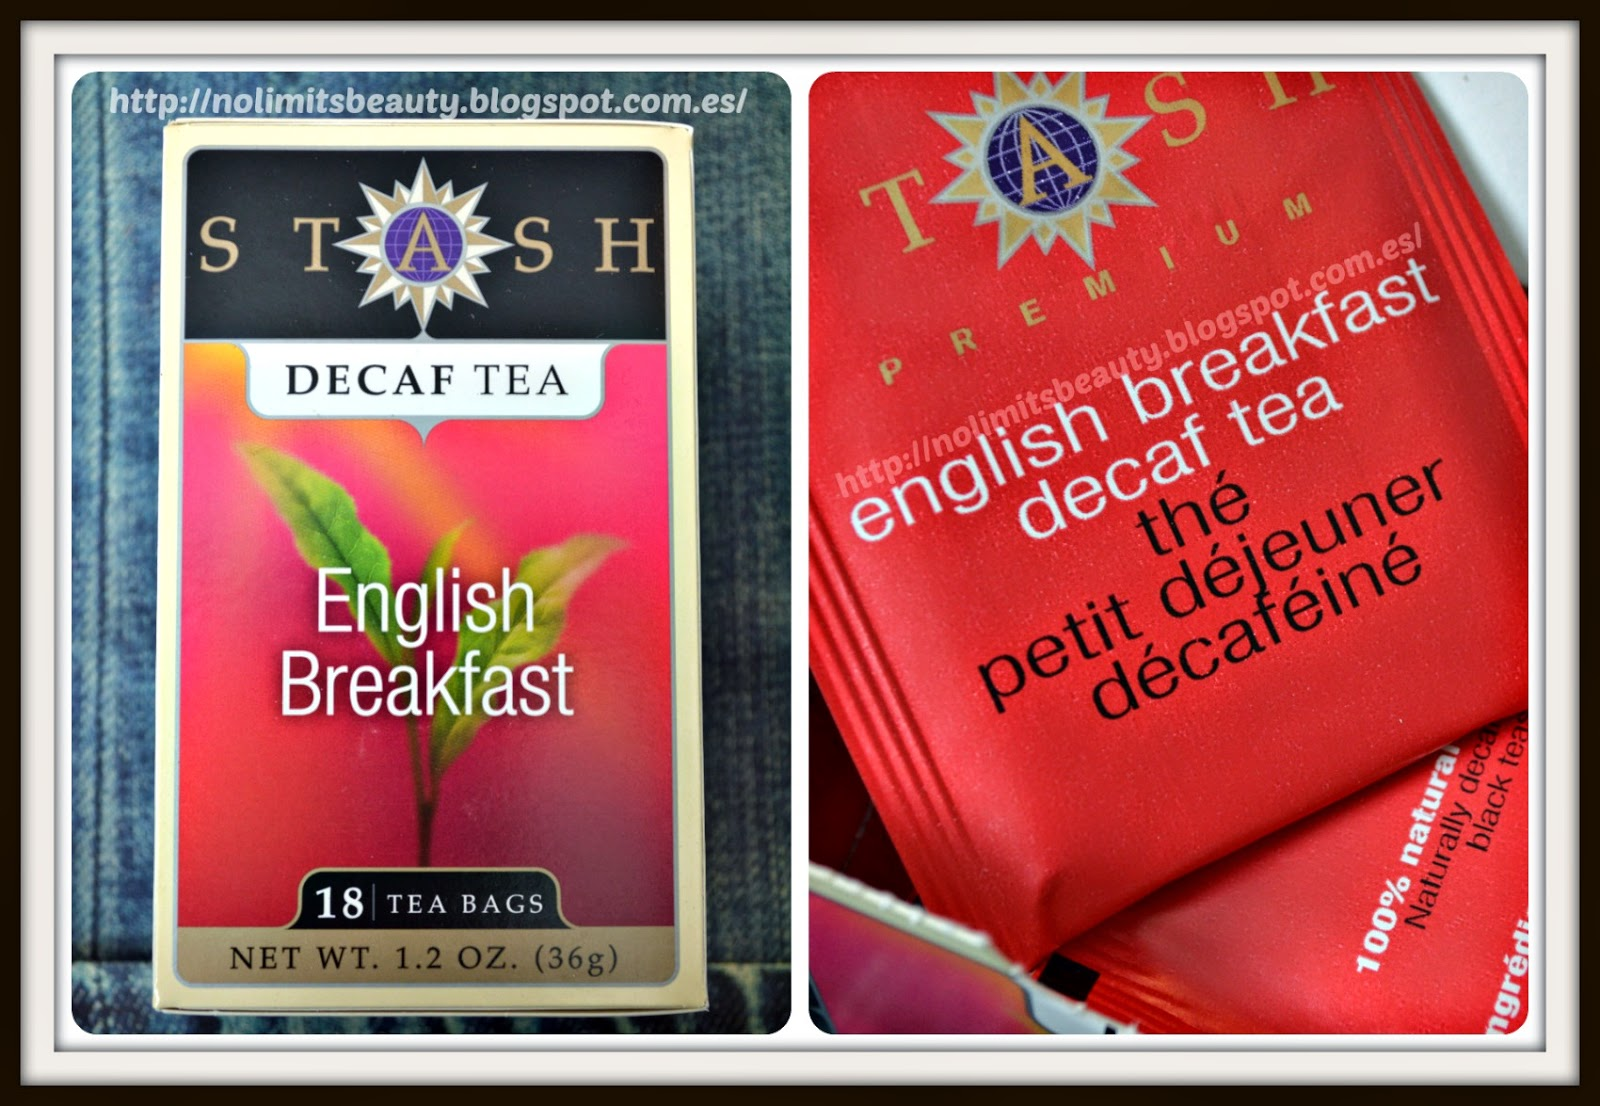 English Breakfast Decaf Tea de Stash